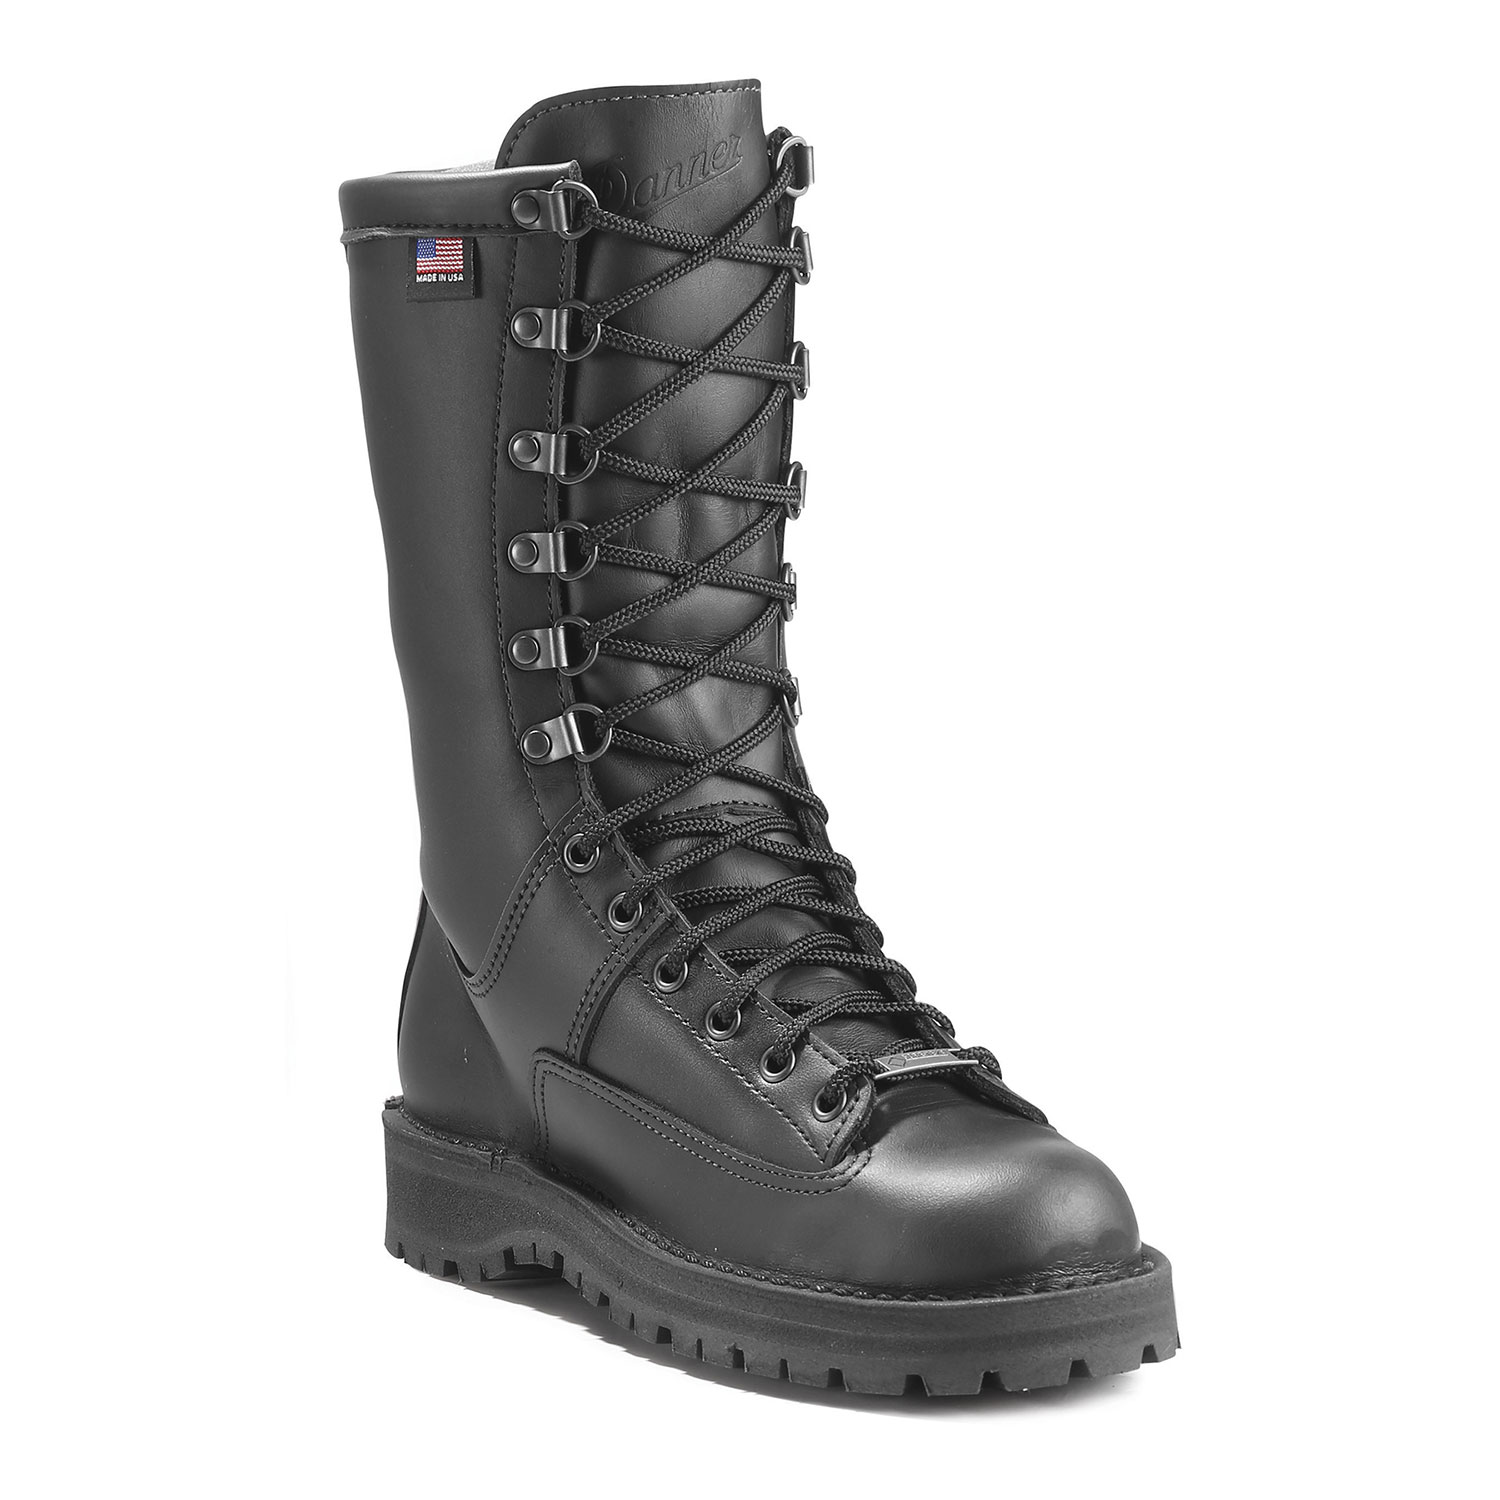 "Danner Fort Lewis 10"" Waterproof Boot"